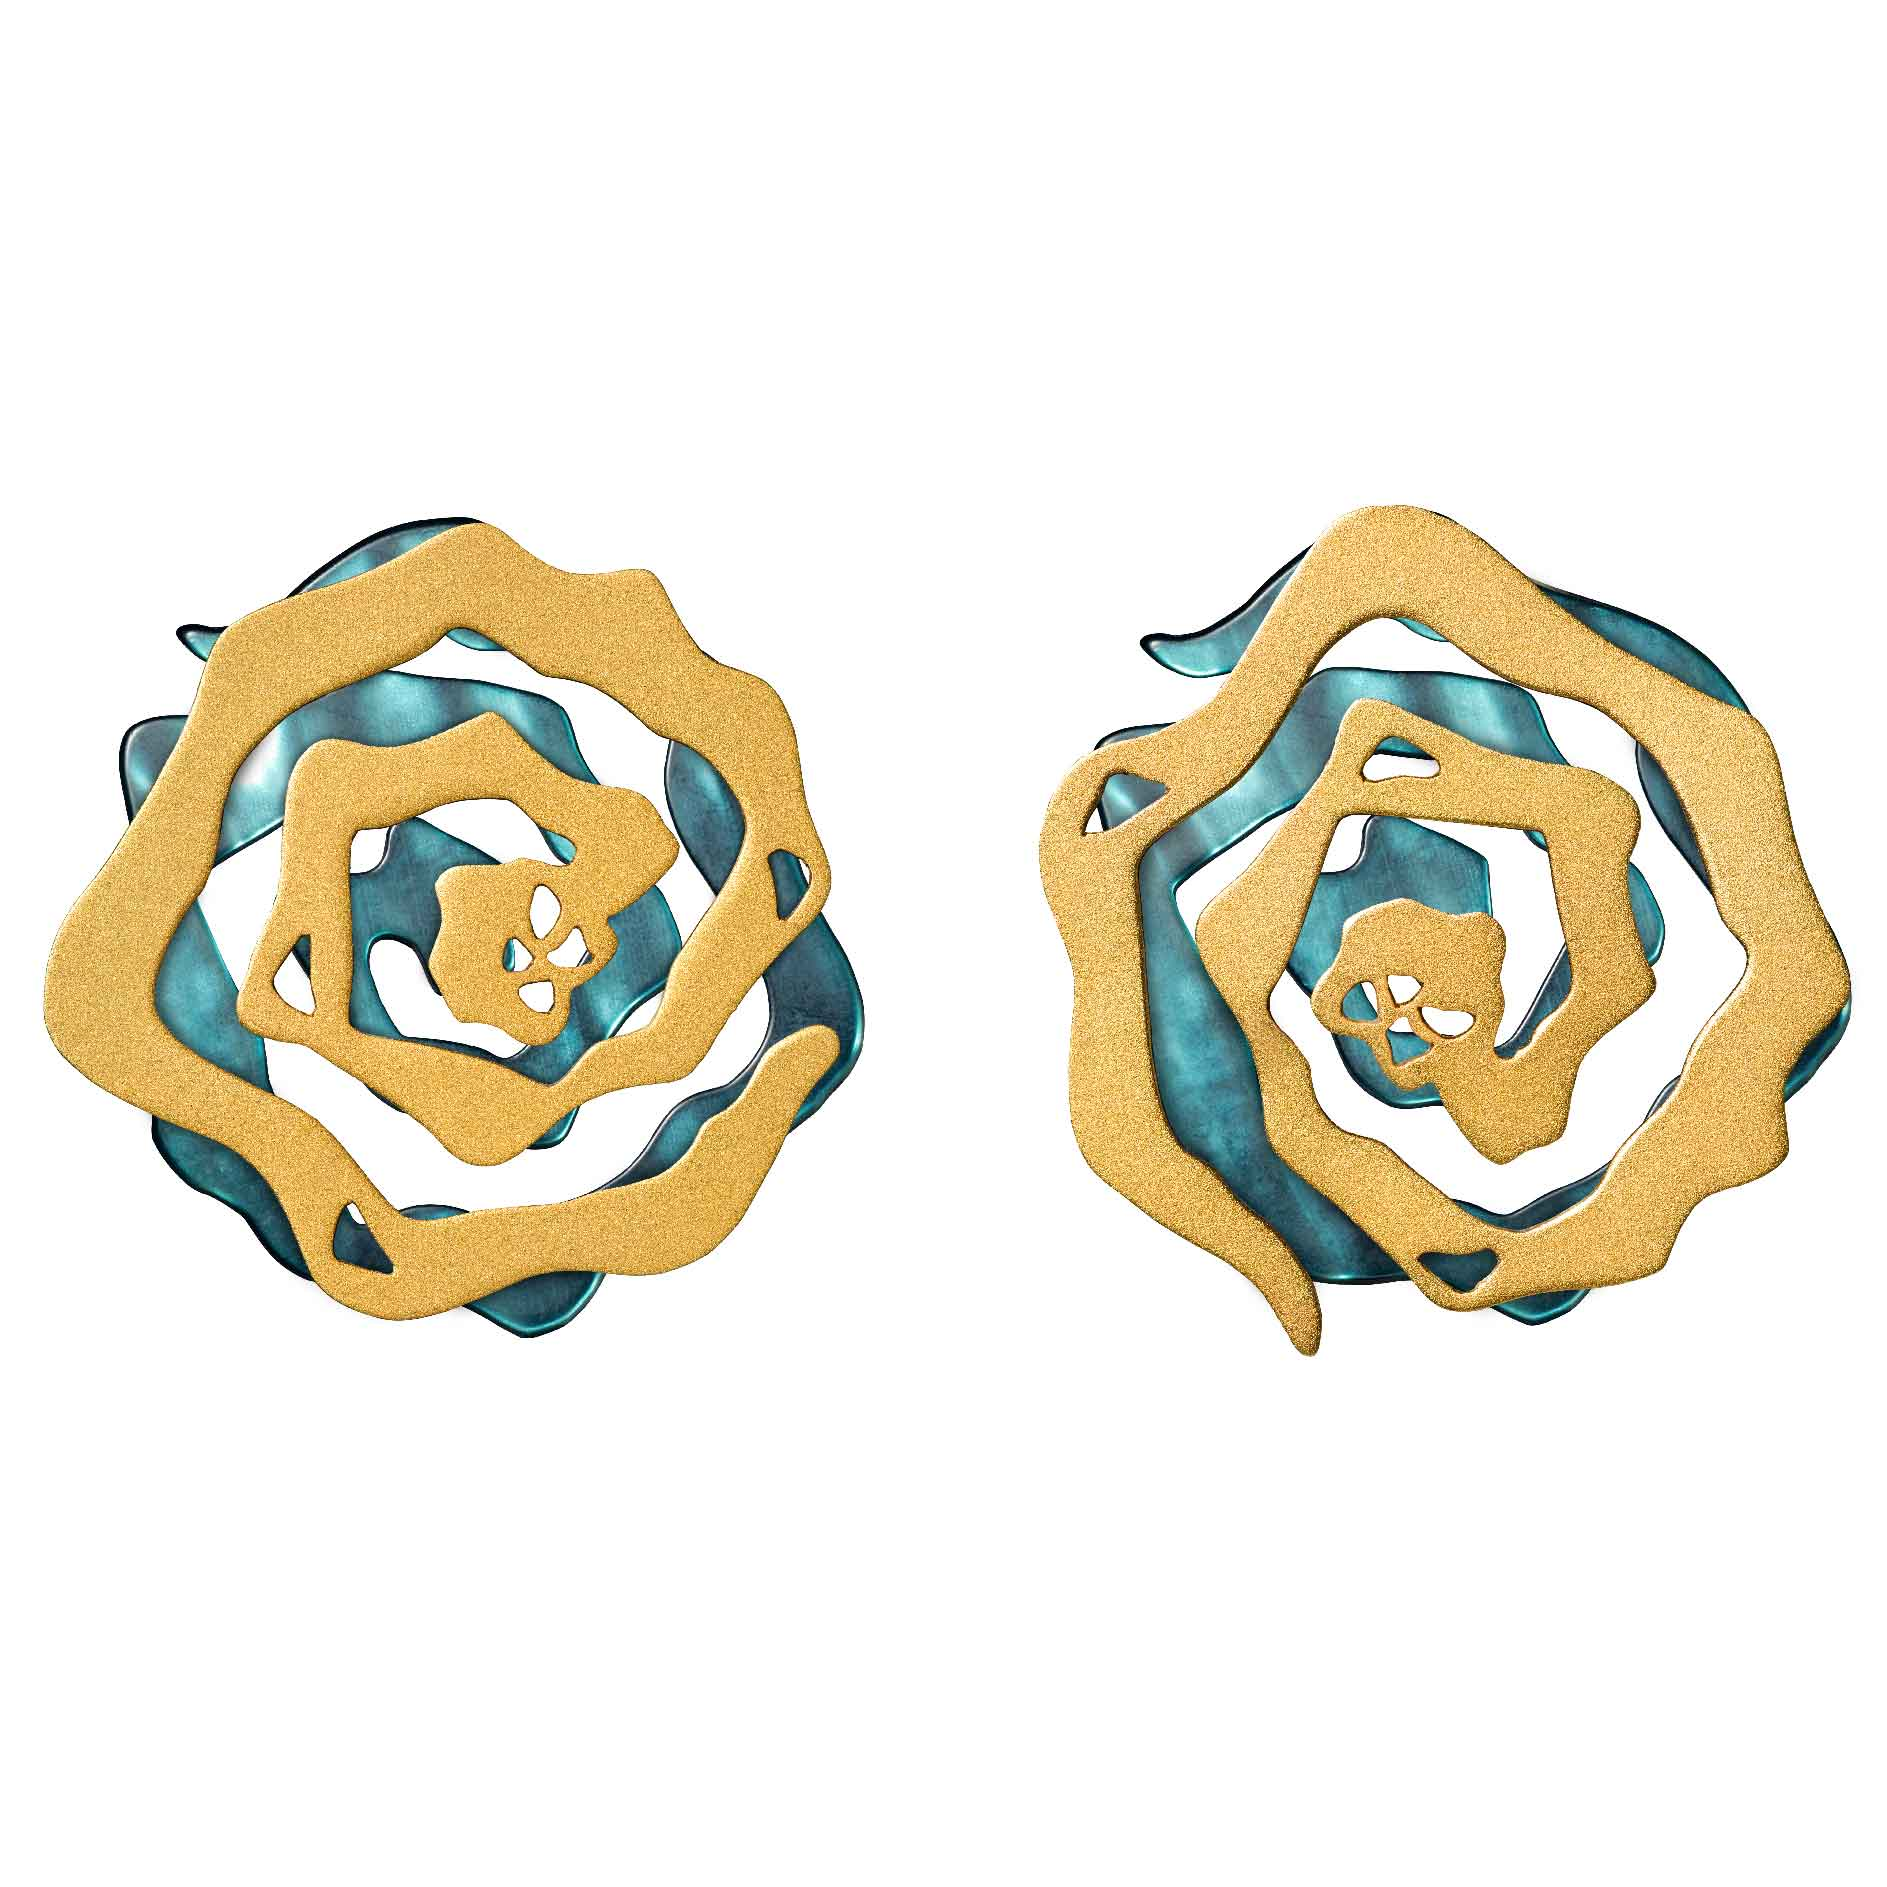 INTERCHANGEABLE CABBAGE EARRINGS